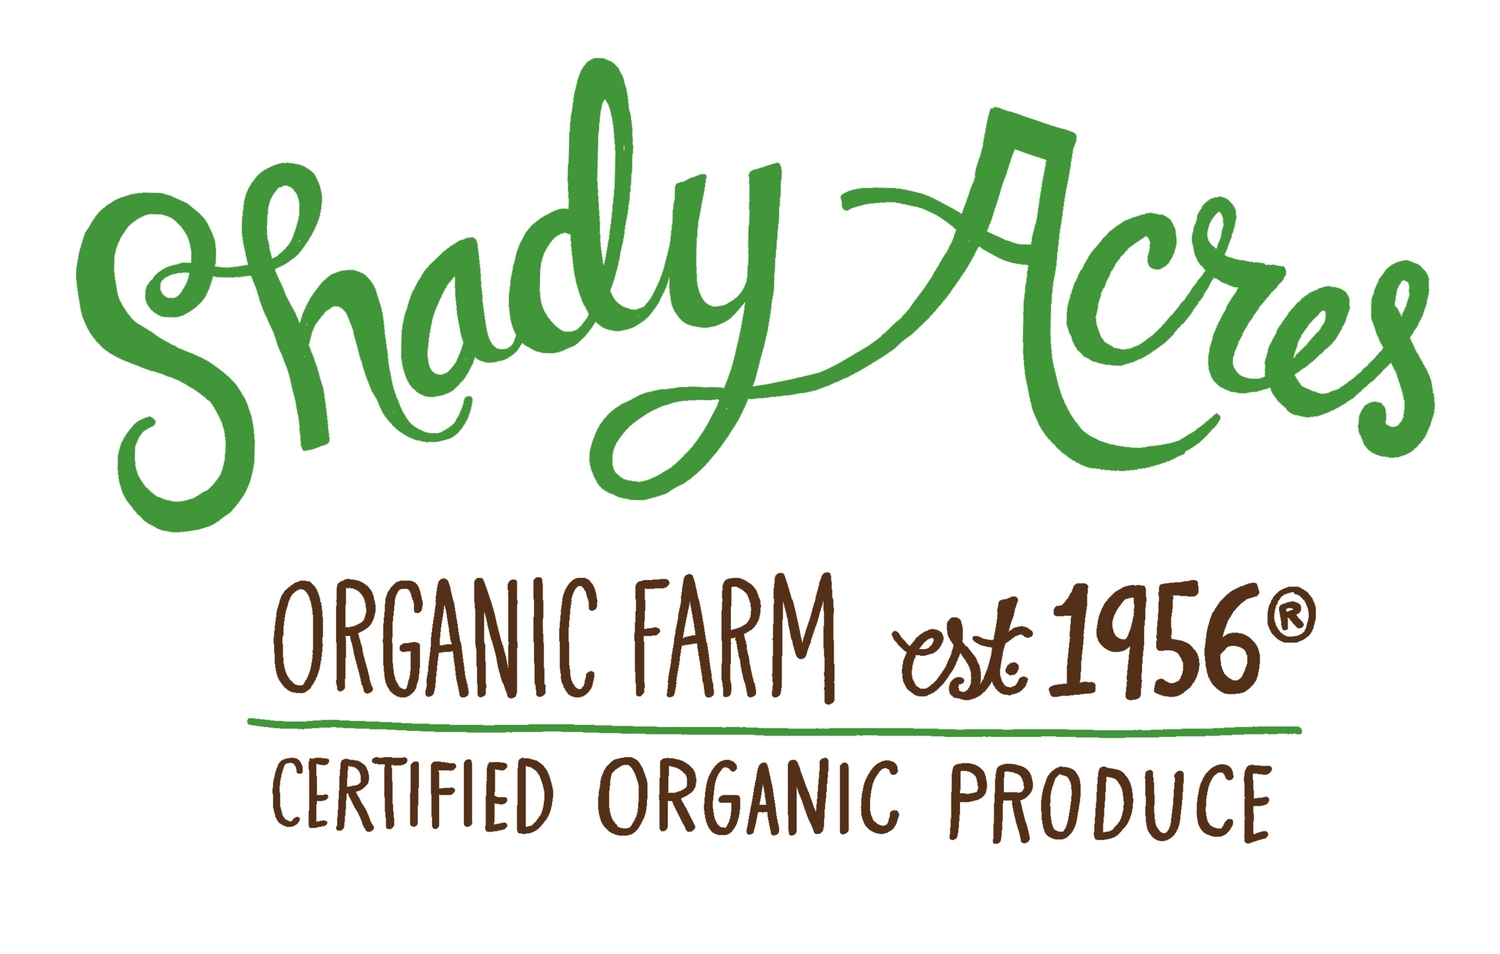 Shady Acres Organic Farm